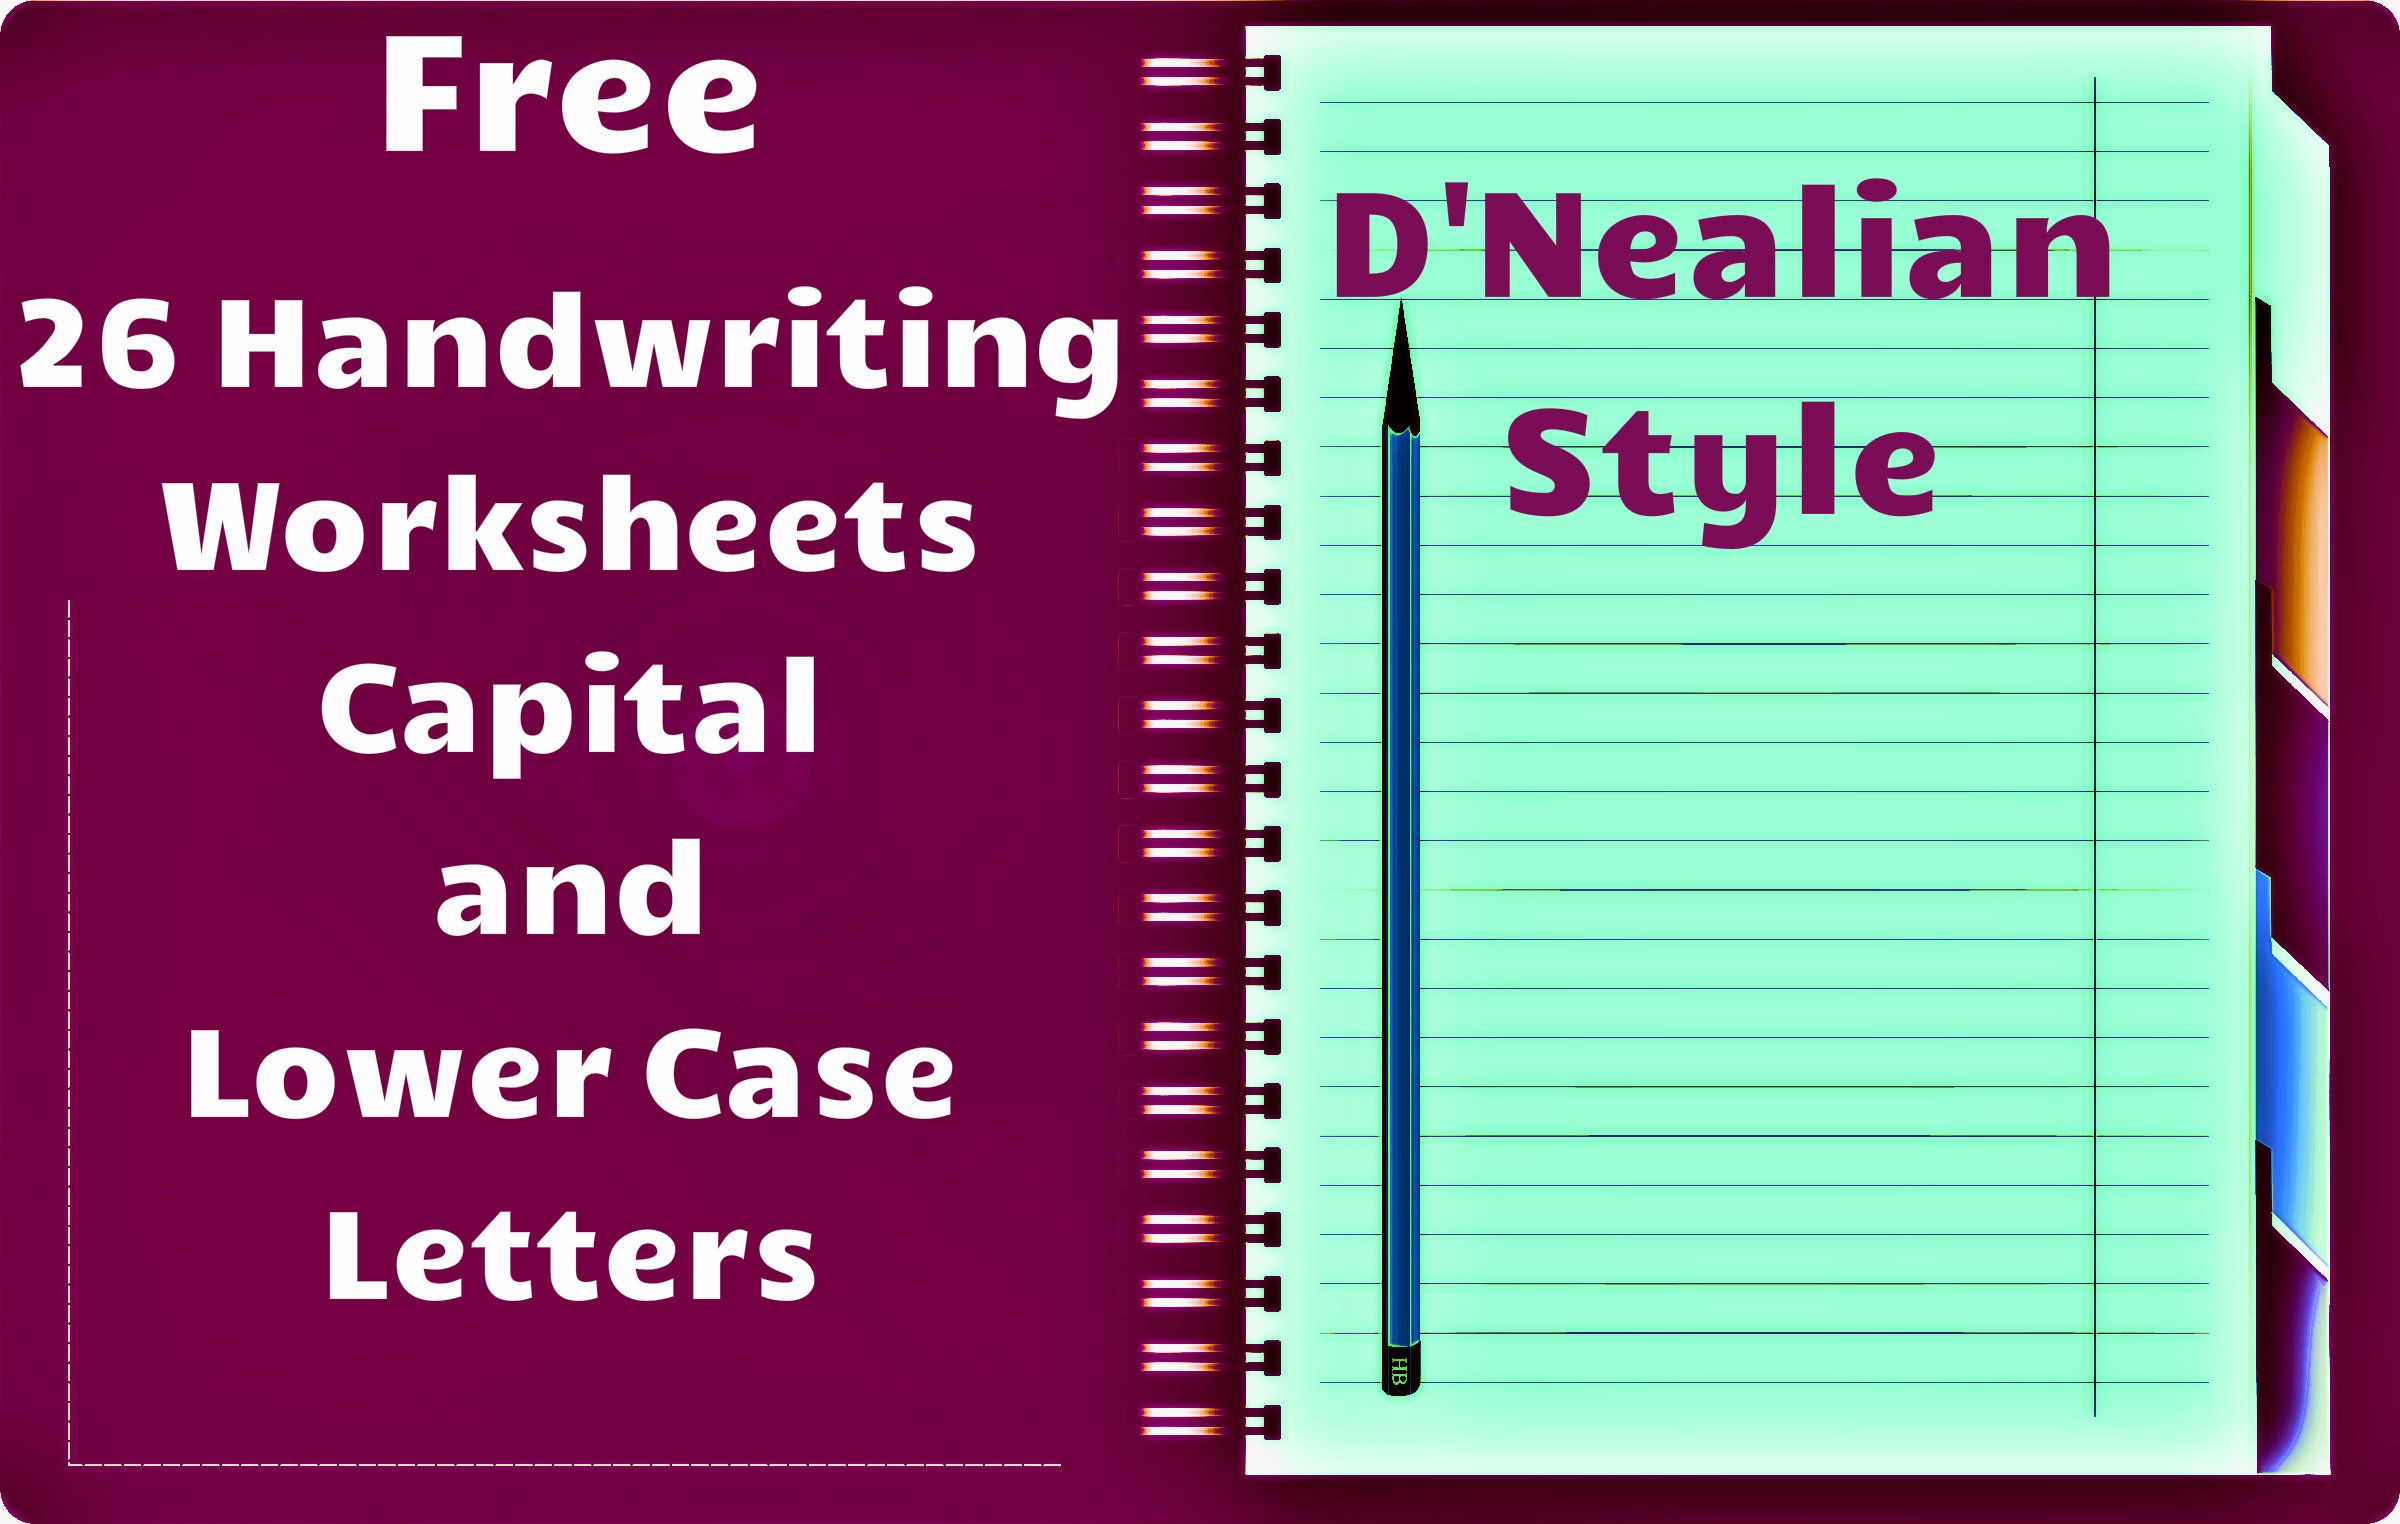 Worksheet D Nealian Handwriting Worksheets Free 1000 images about dnealian handwriting on pinterest worksheets free and tracing letters